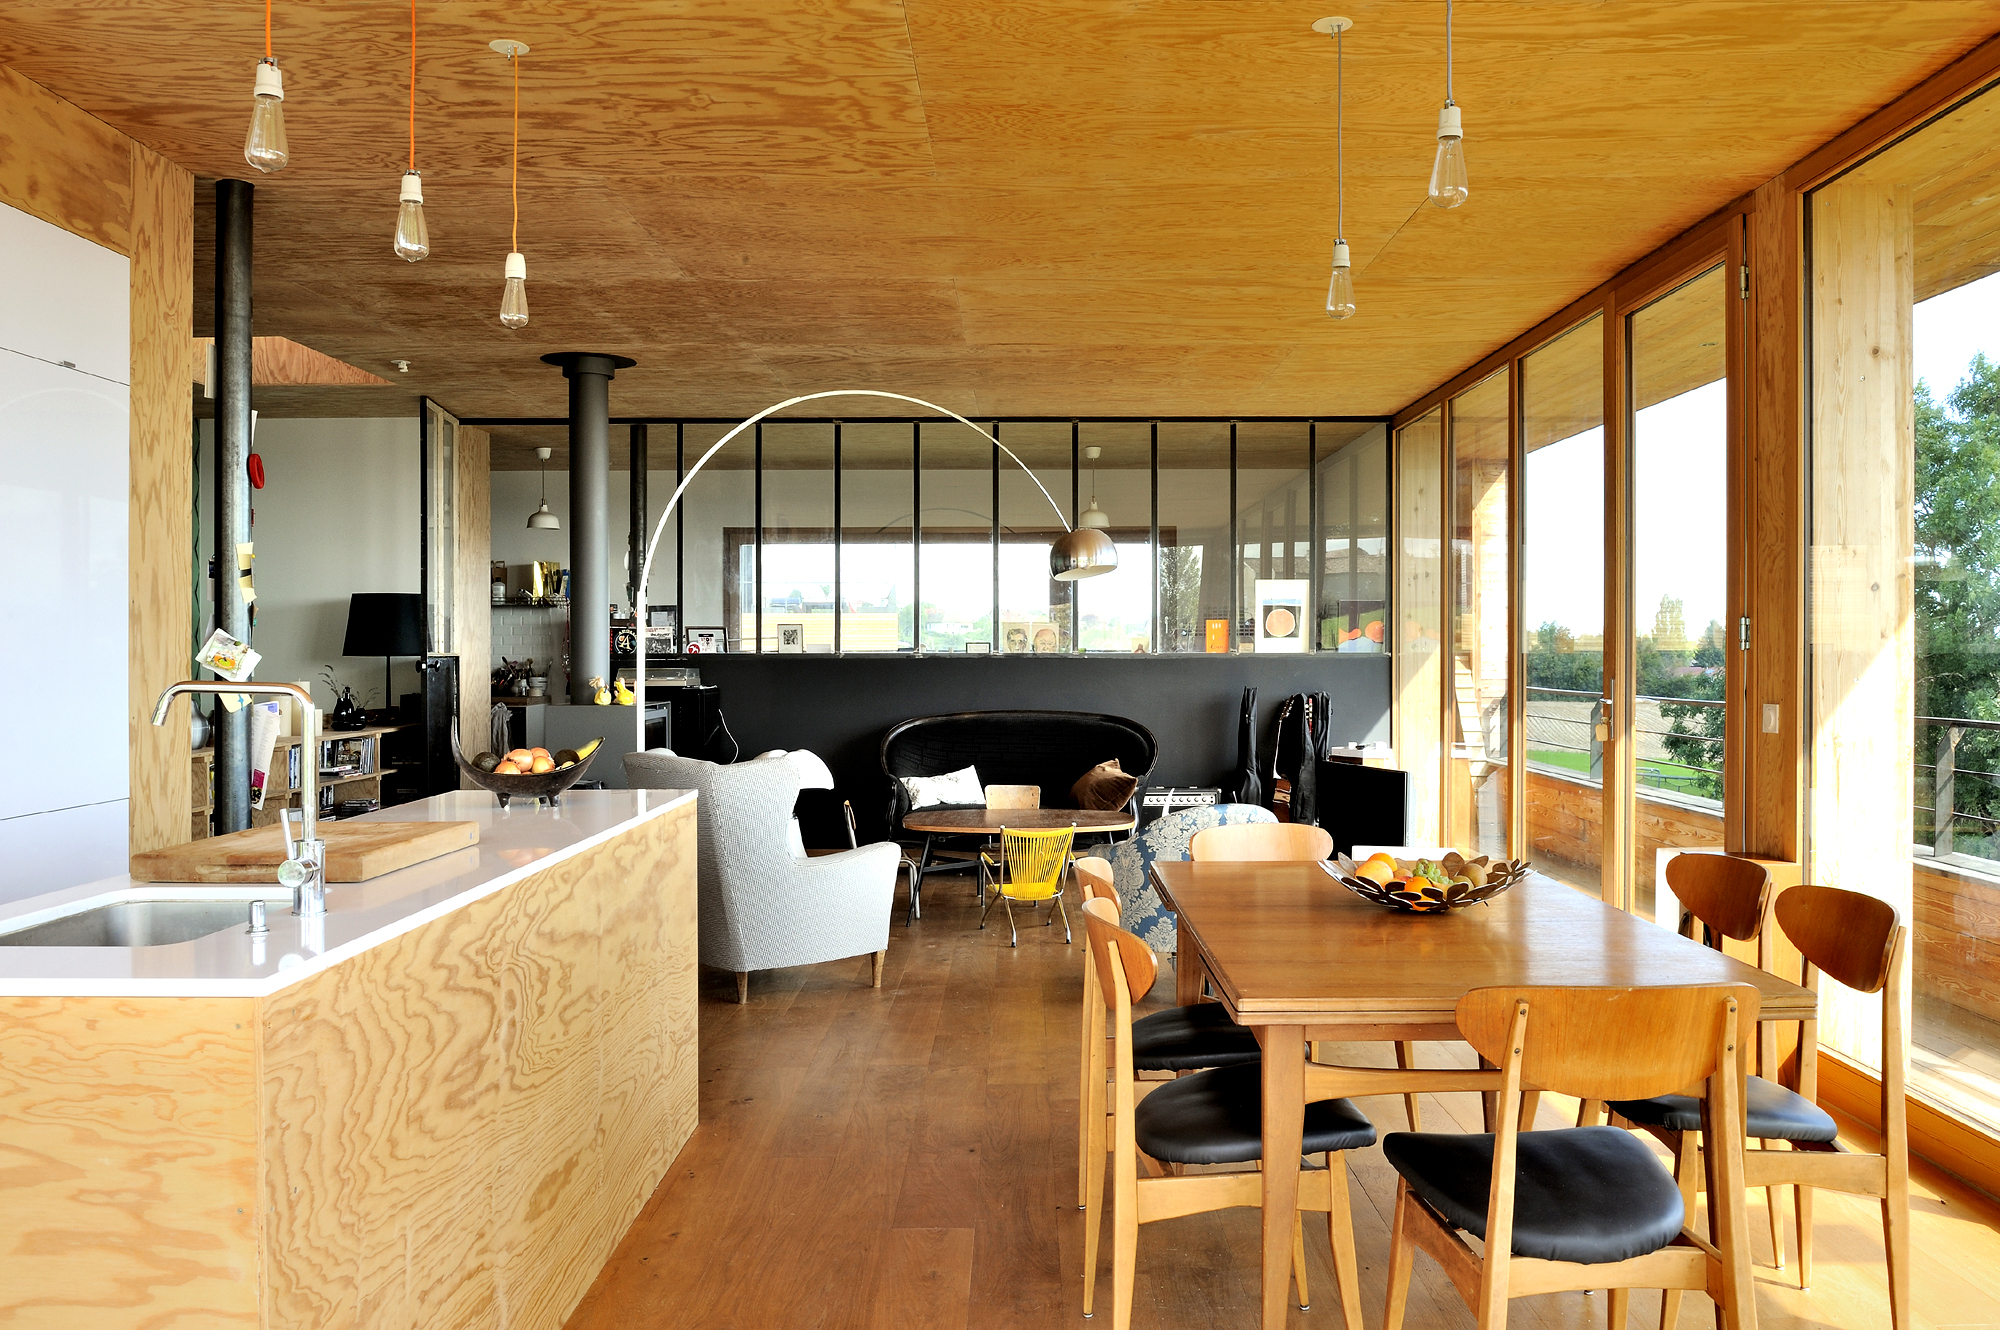 Amenagement Interieur Maison En Bois u2013 Mzaol com # Maison Bois Interieur